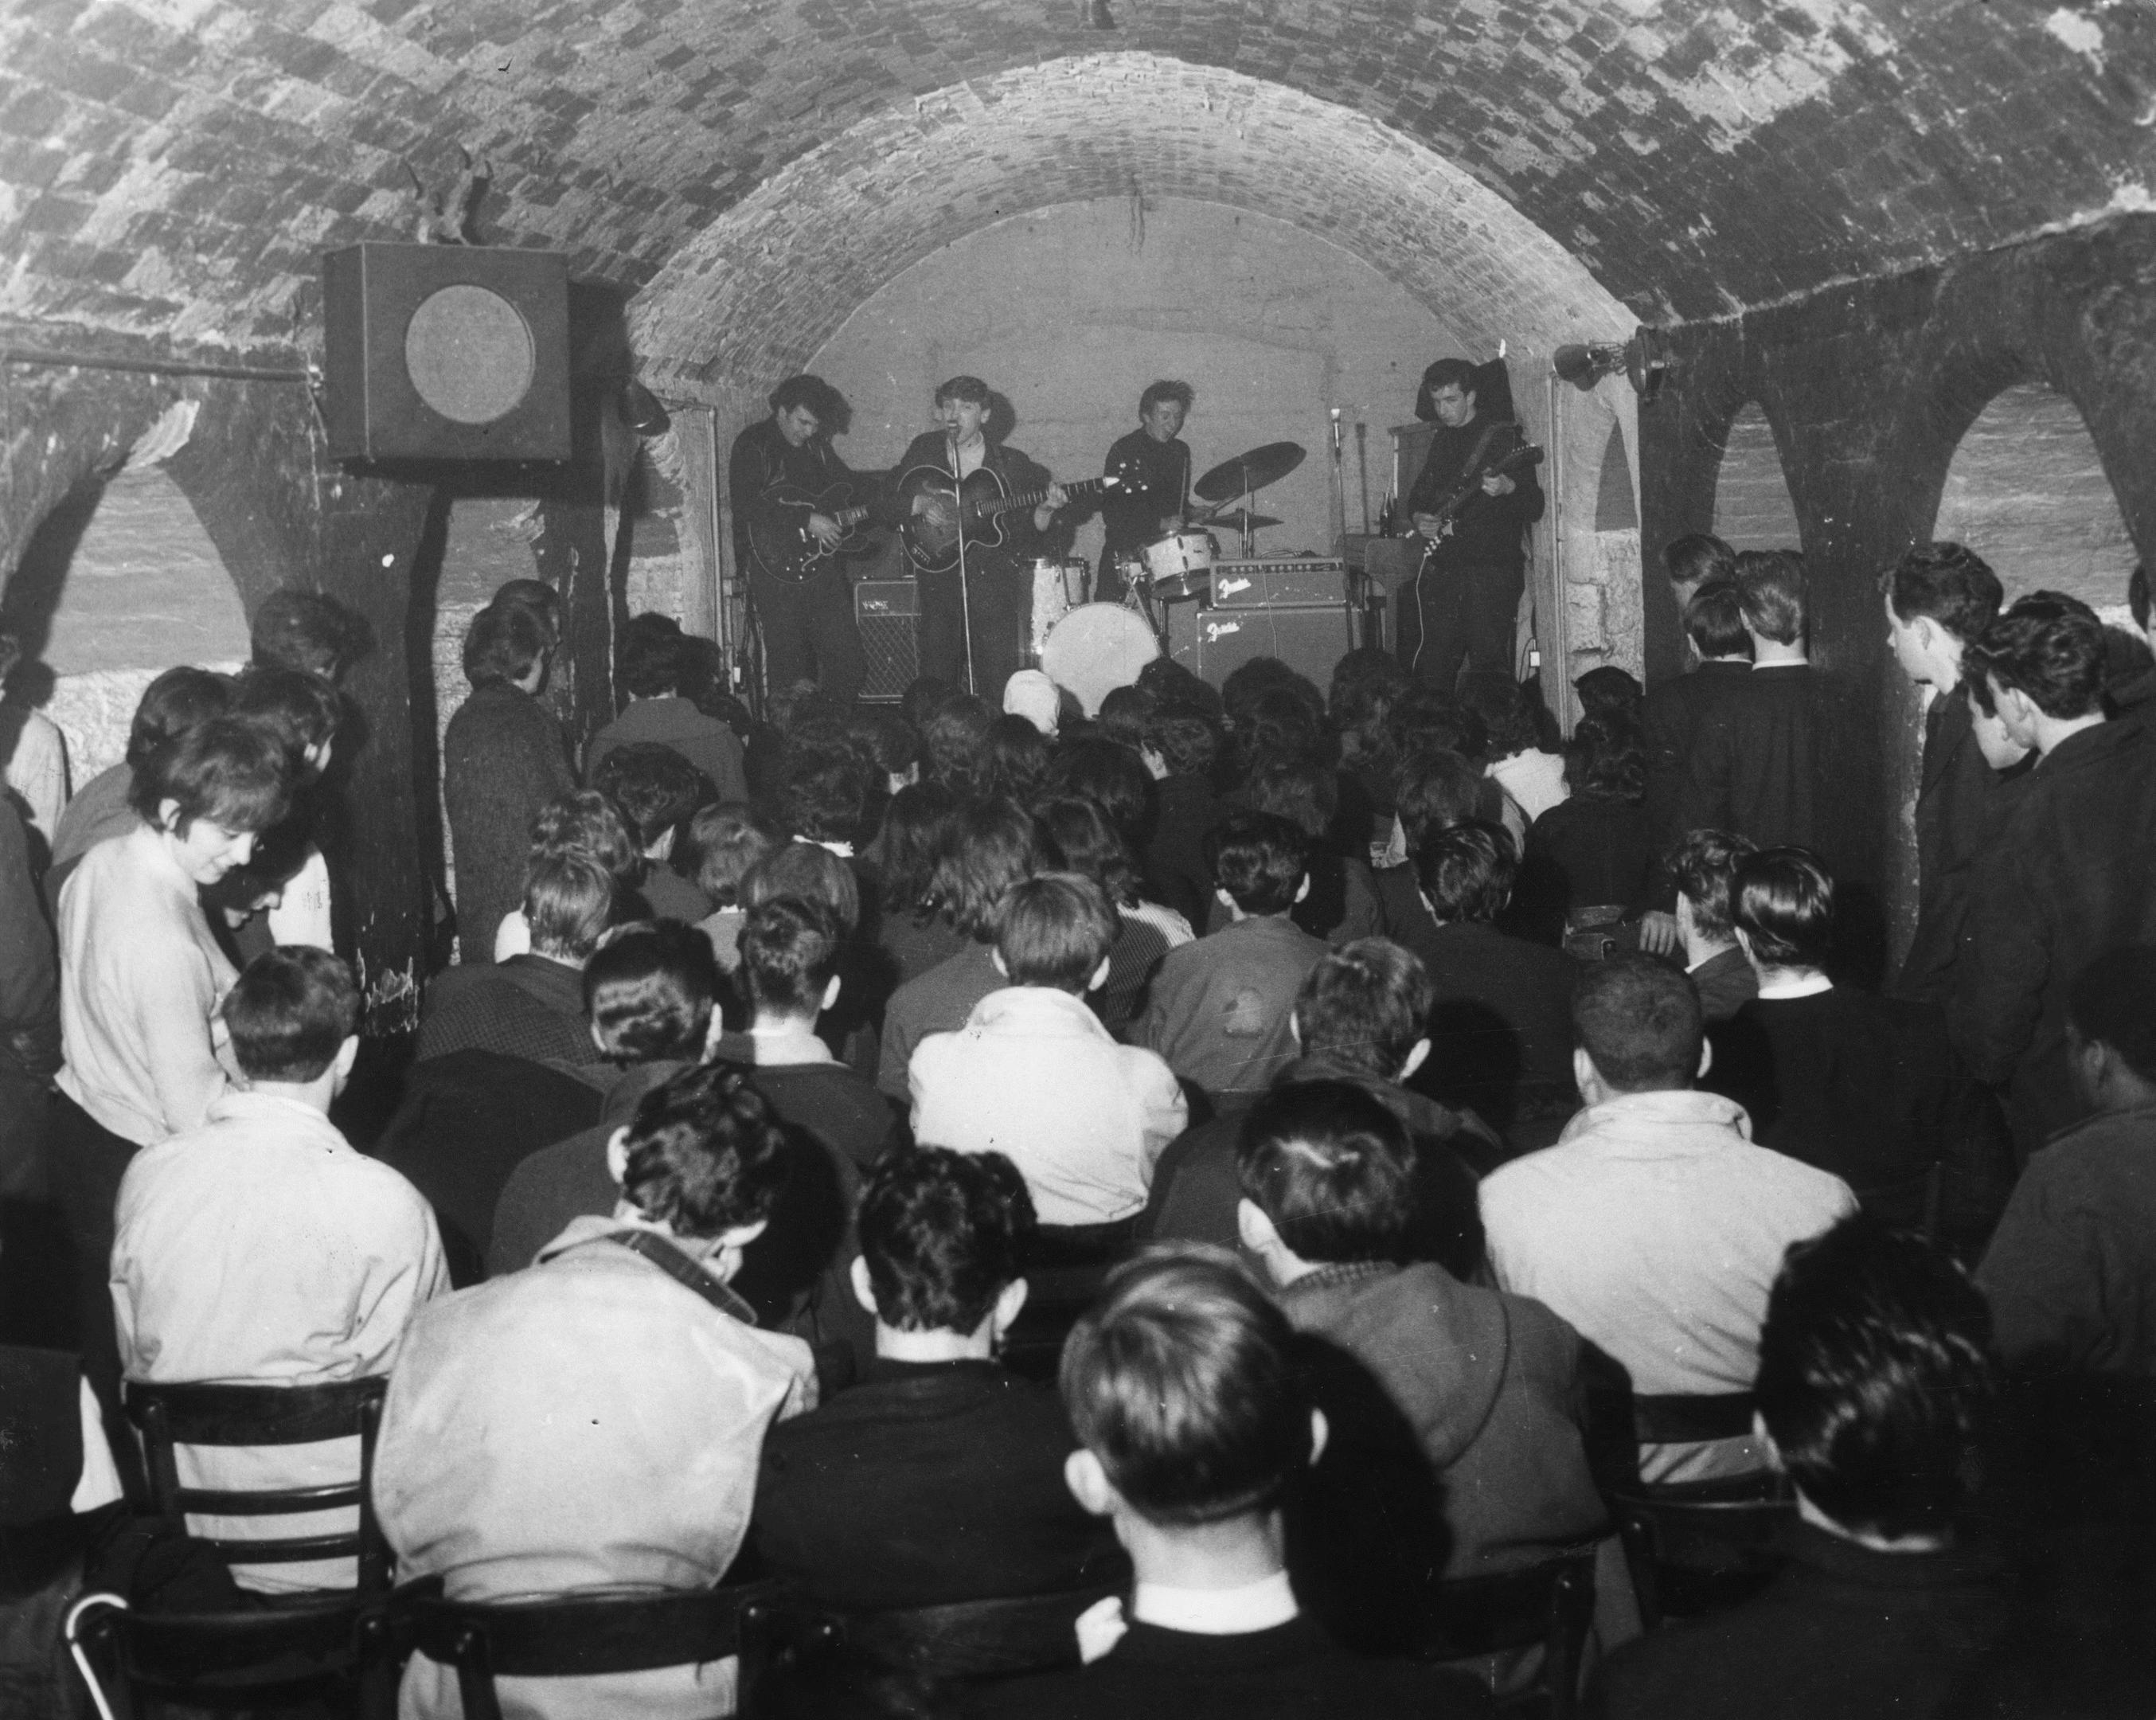 The Merseybeats - named after the musical movement headed by The Beatles - play to a packed Cavern Club audience (Getty Images)